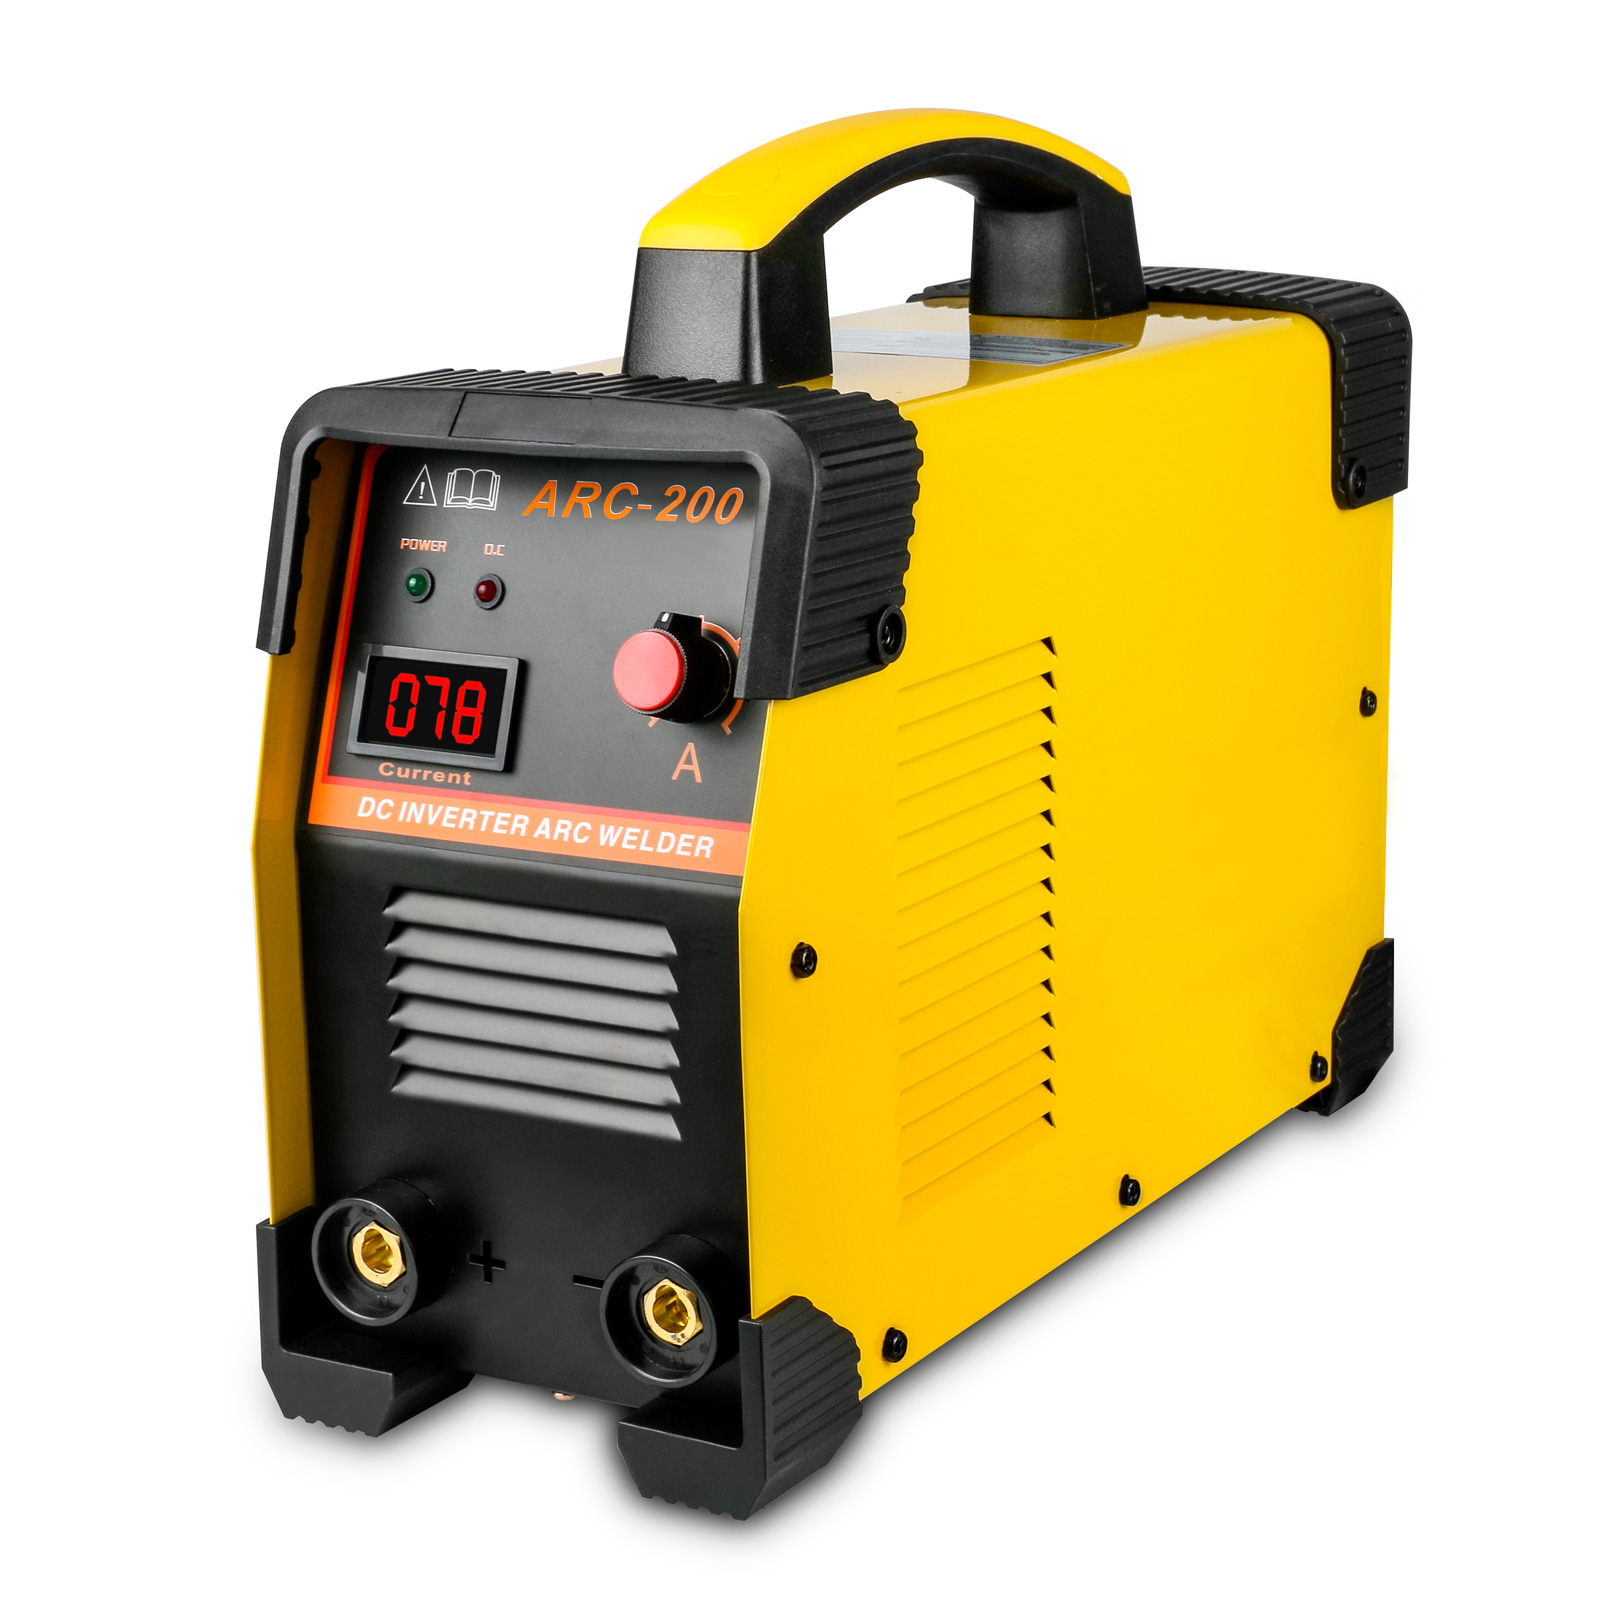 Arc-200 Inverter Welder IGBT 30-160A Handheld Intelligent MMA Welding Machine Kit 220V/110v EU Plug стоимость